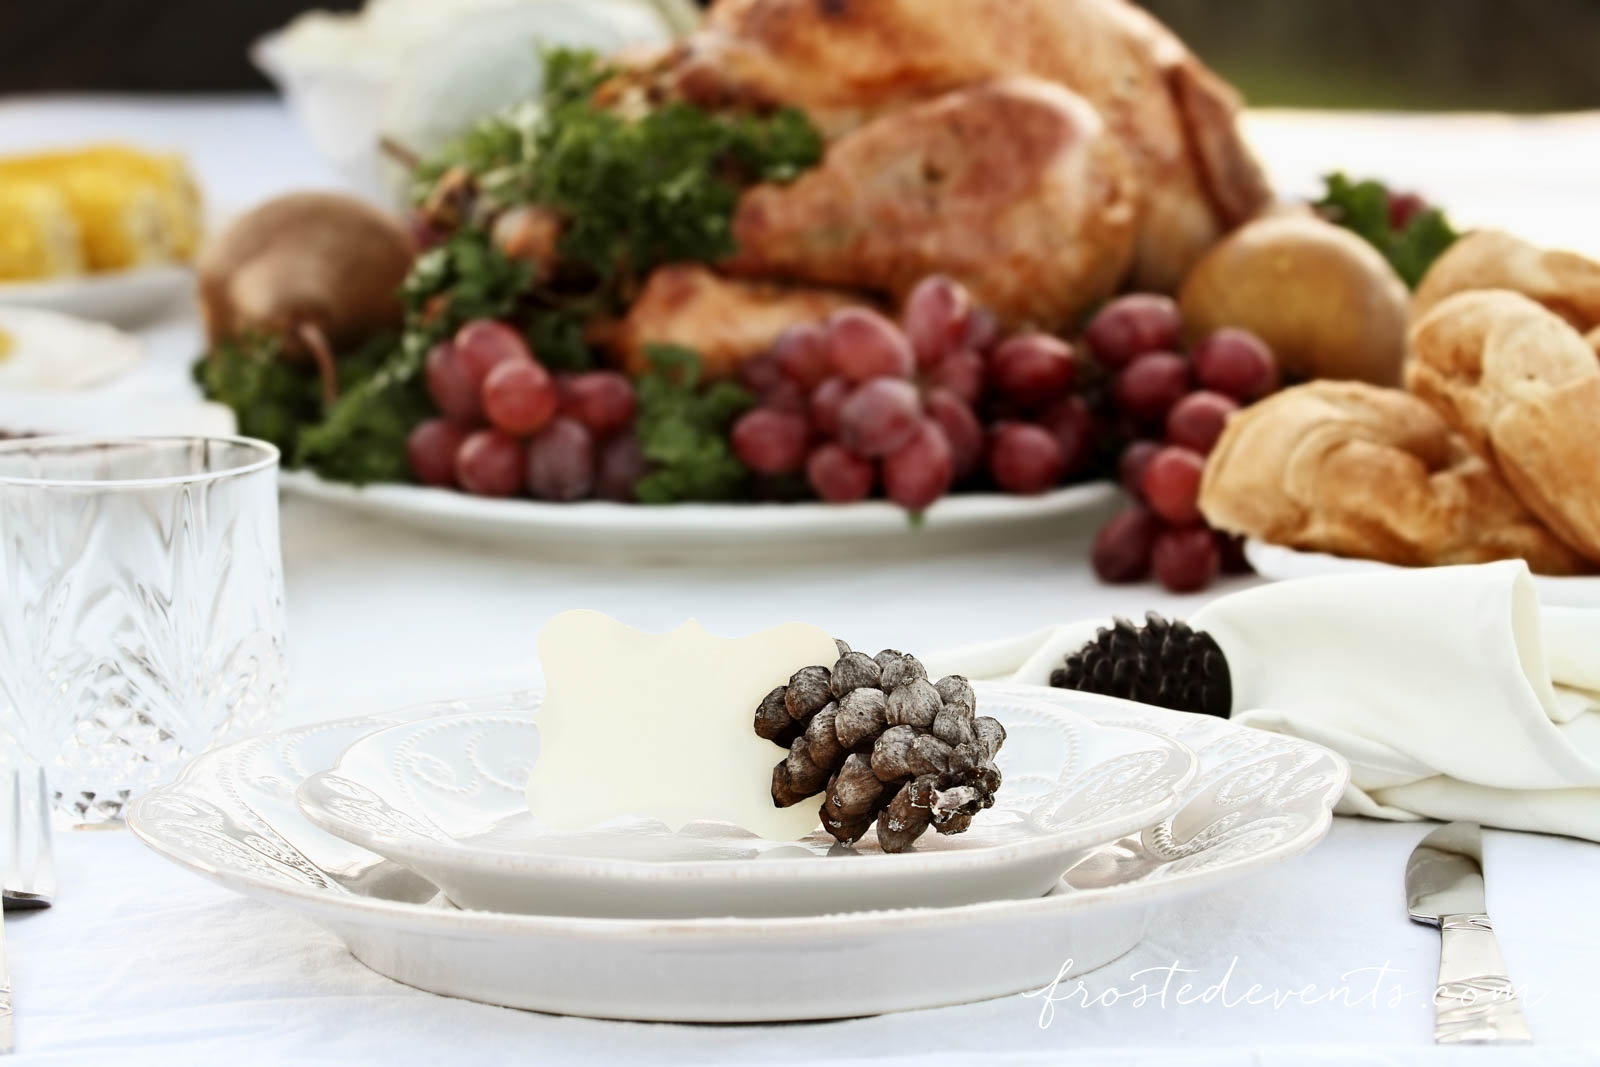 Thanksgiving Dinner Menu Ideas Thanksgiving Turkey frostedevents.com